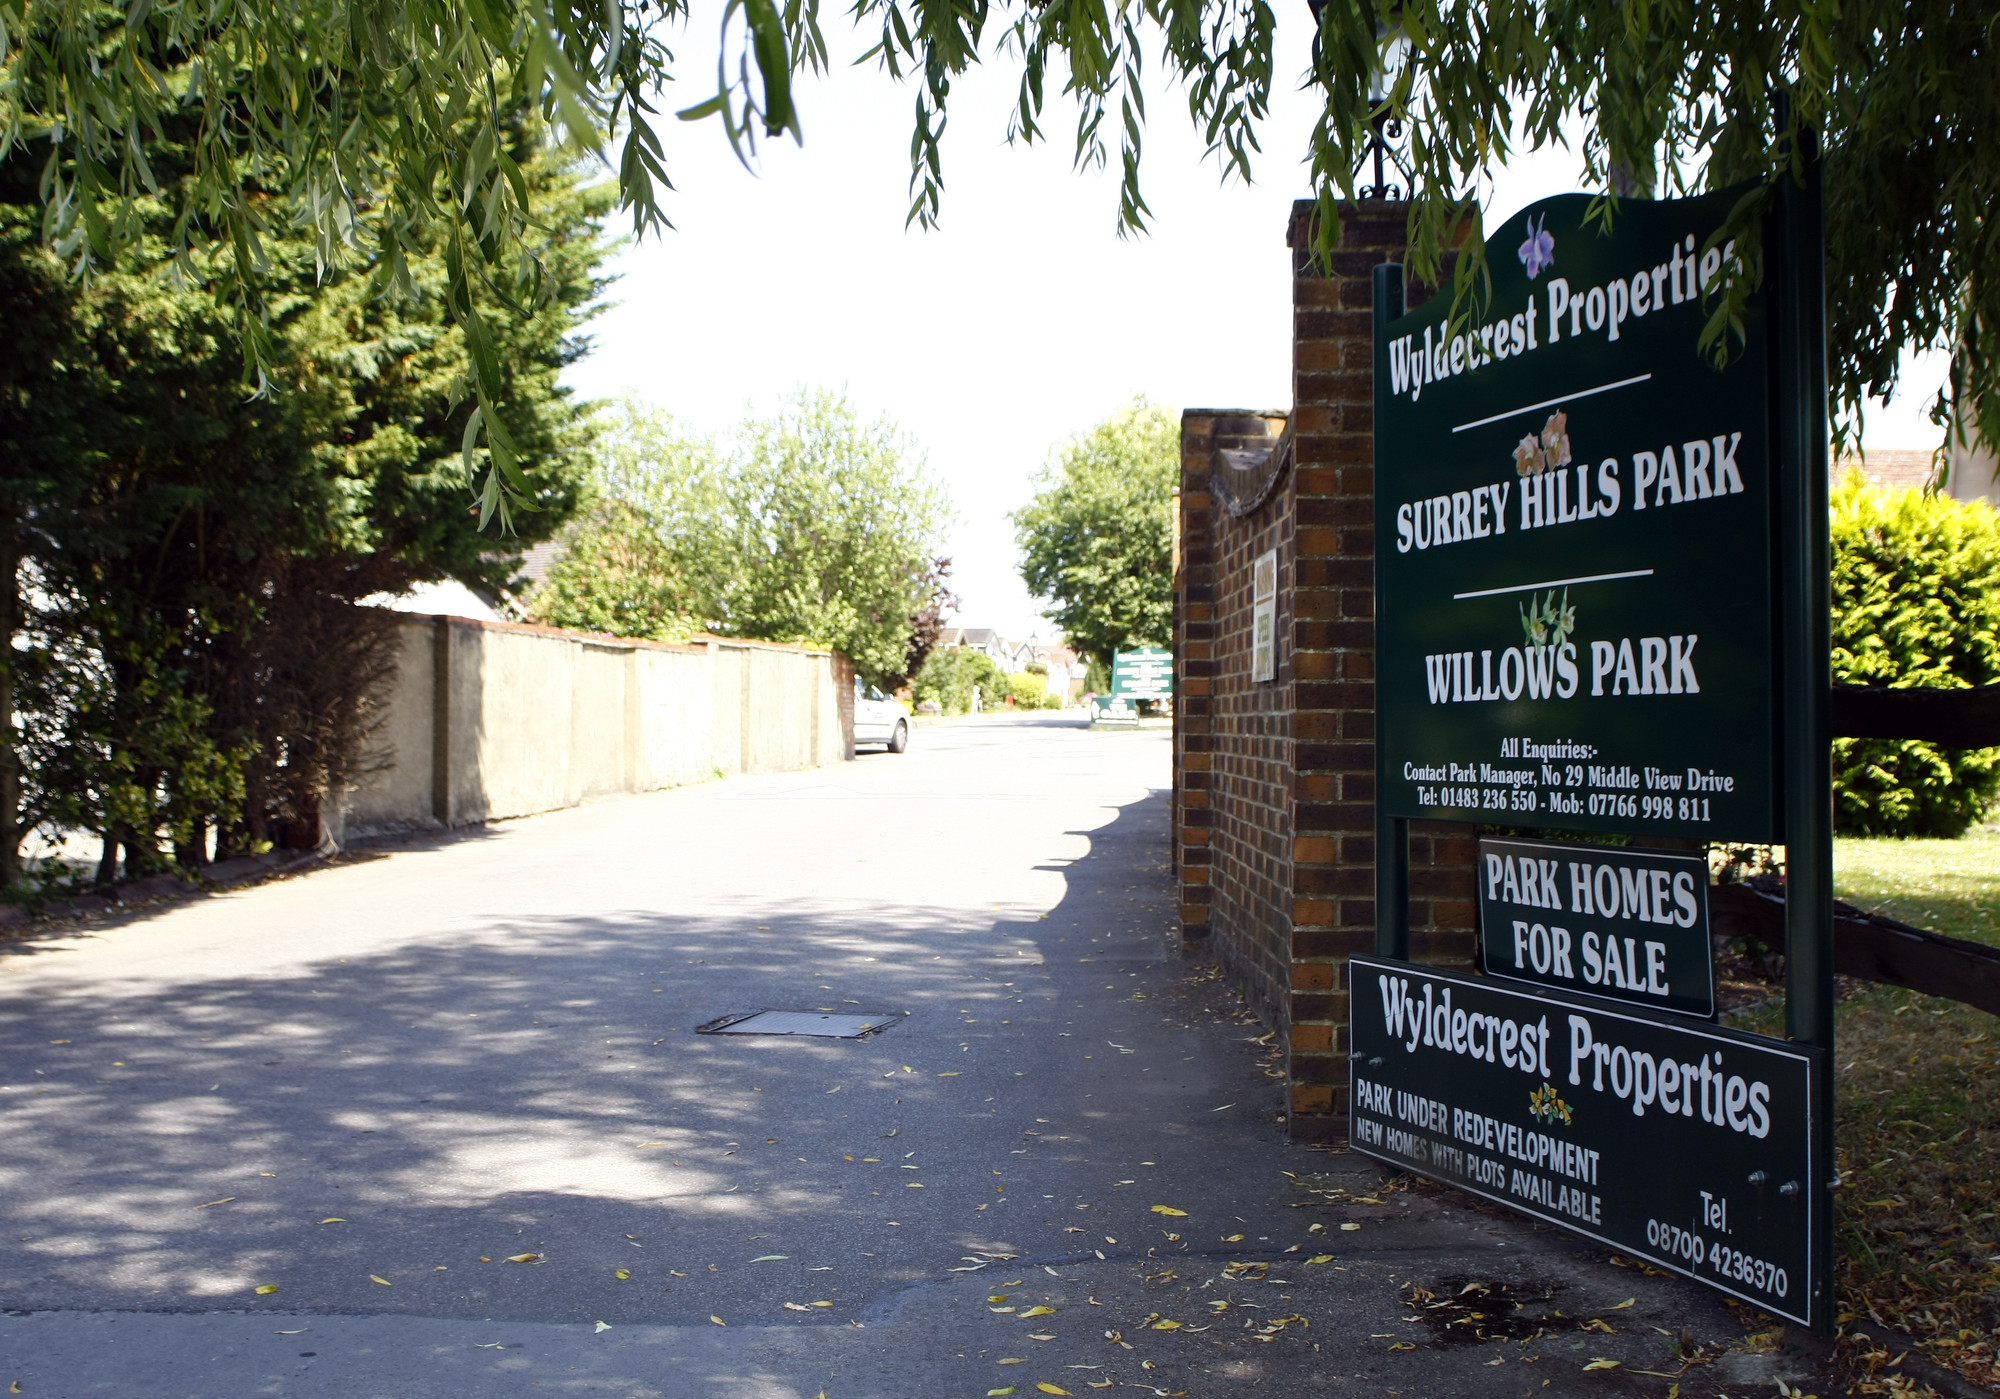 Traders Insurance Policy >> Surrey Hills Park (Guildford) - Residential Park Homes in Surrey, South East England